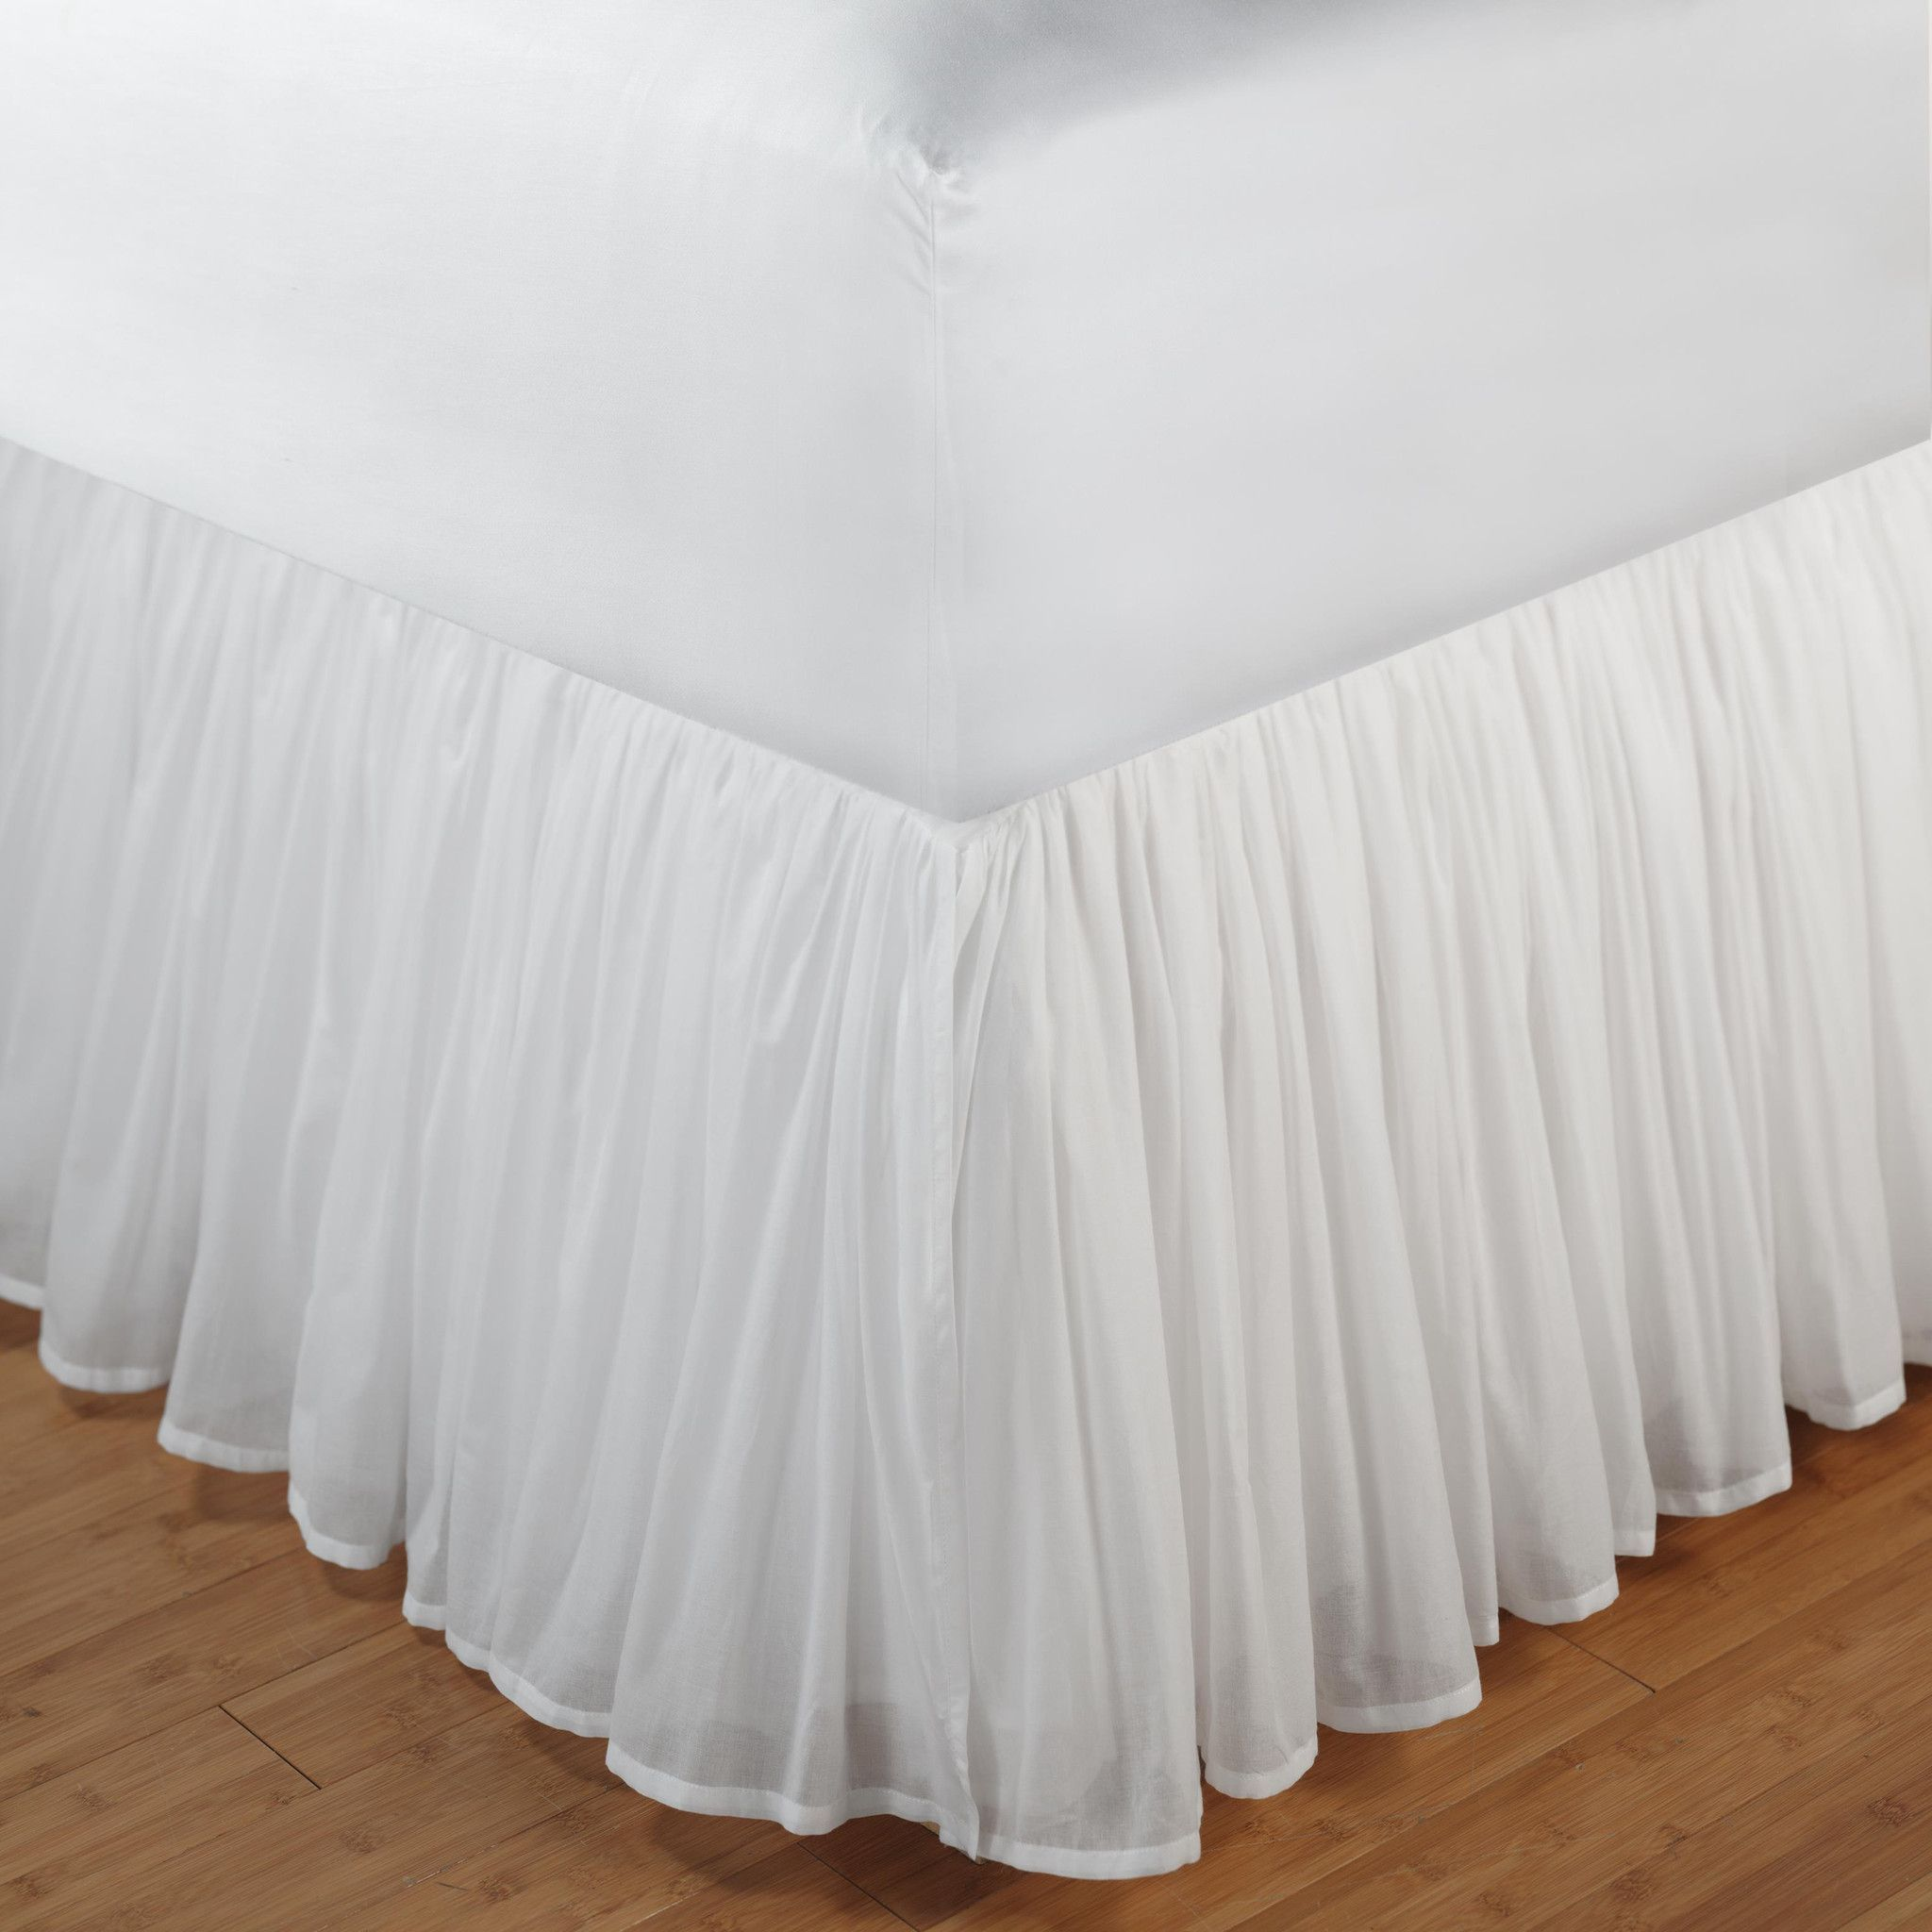 full skirts regard to plan king ruffles around wrap size of bed dust with queen skirt cal